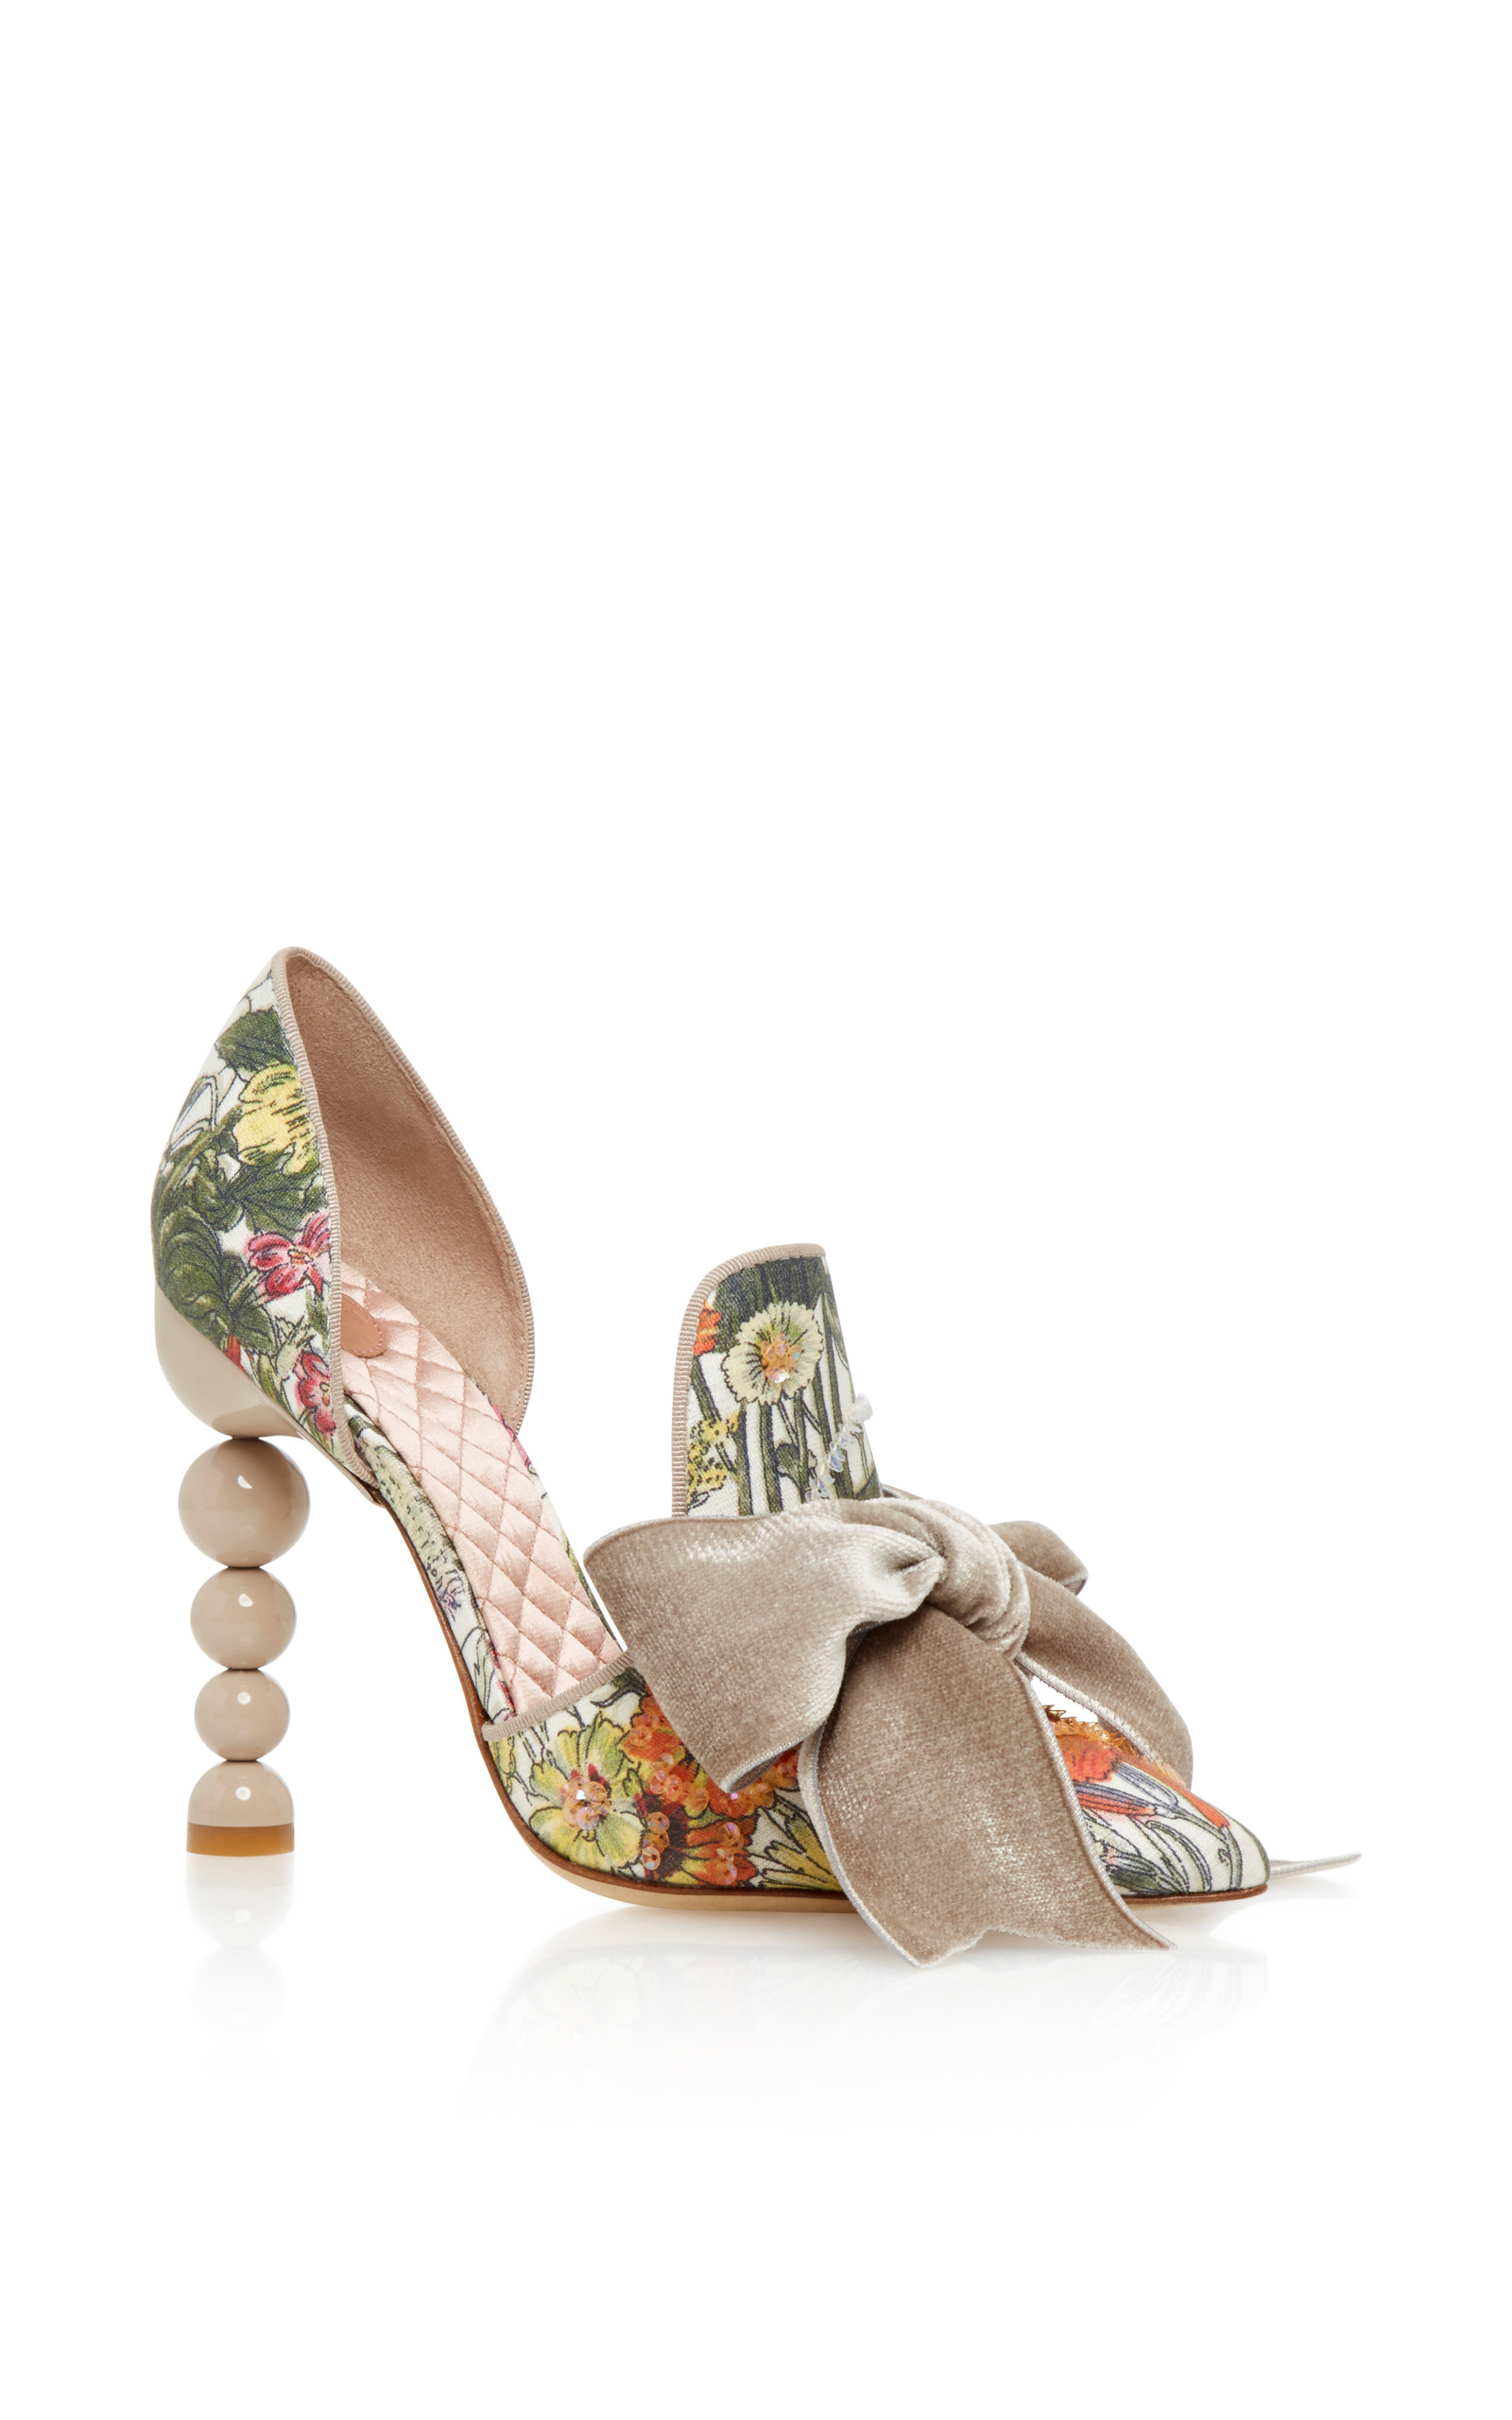 c5b79889d25 Tory BurchFloral Clara Pump. CLOSE. Loading